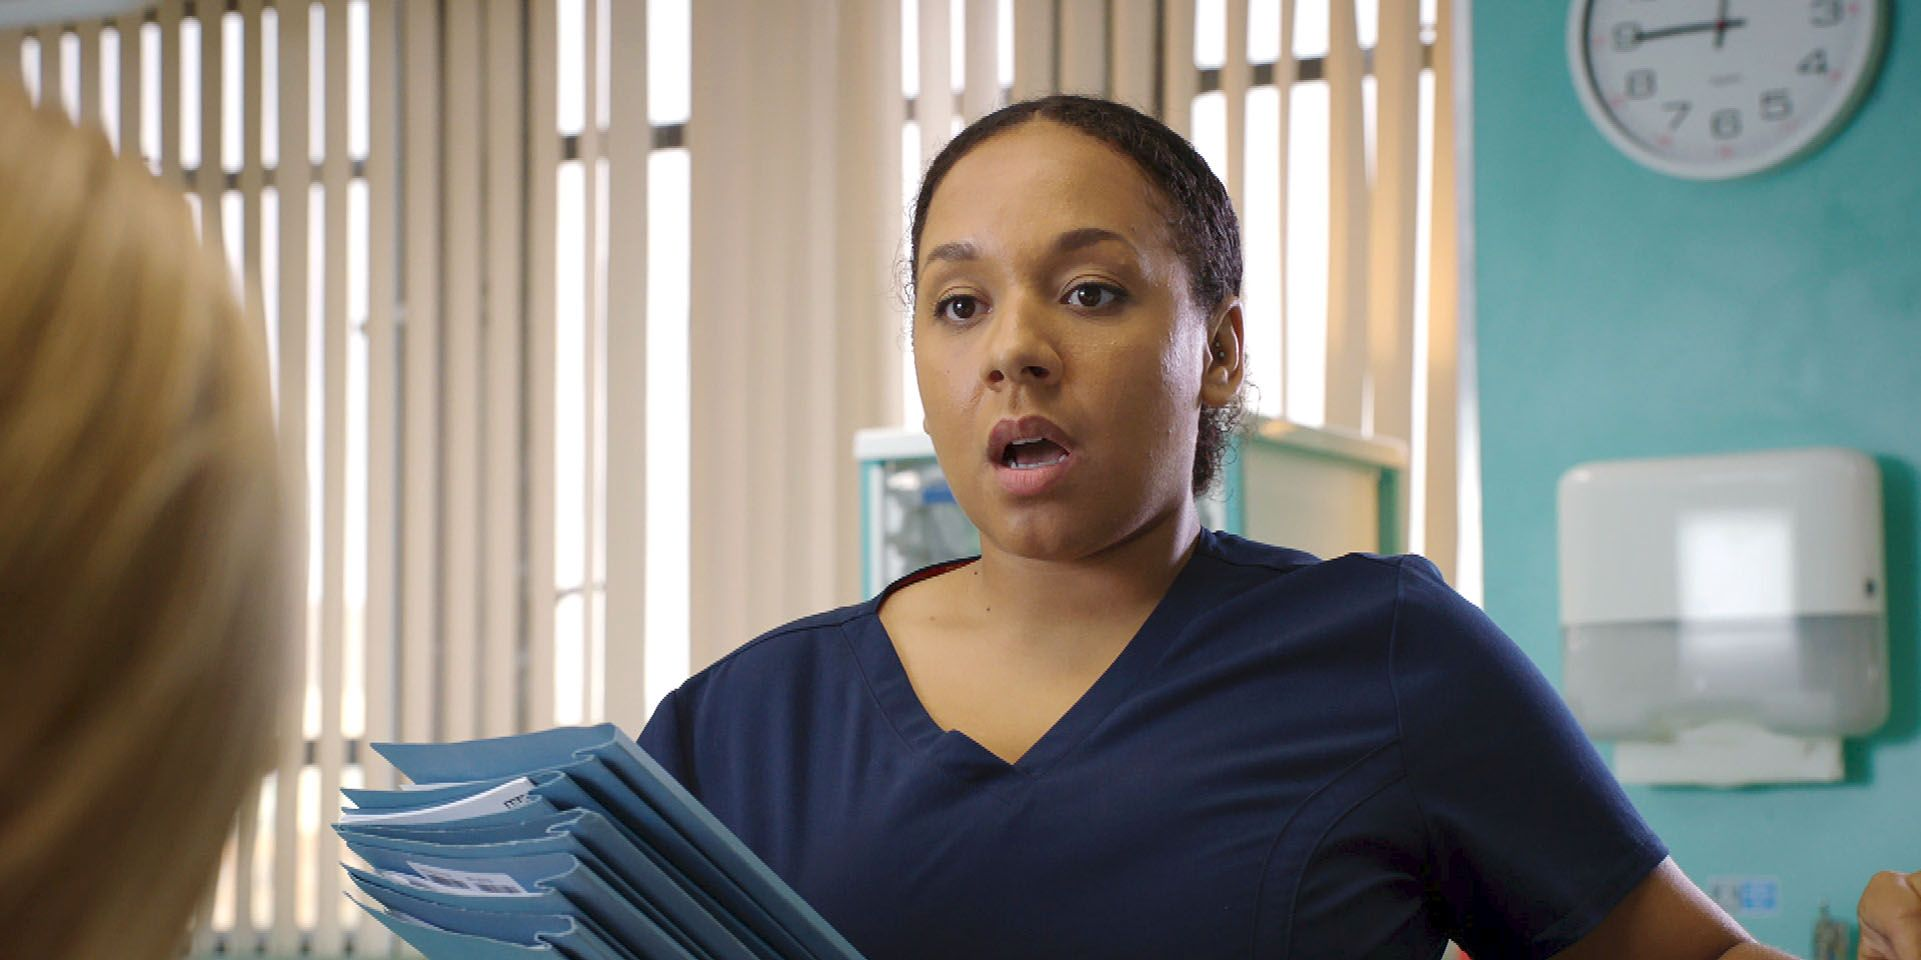 Nicky McKendrick in Holby City